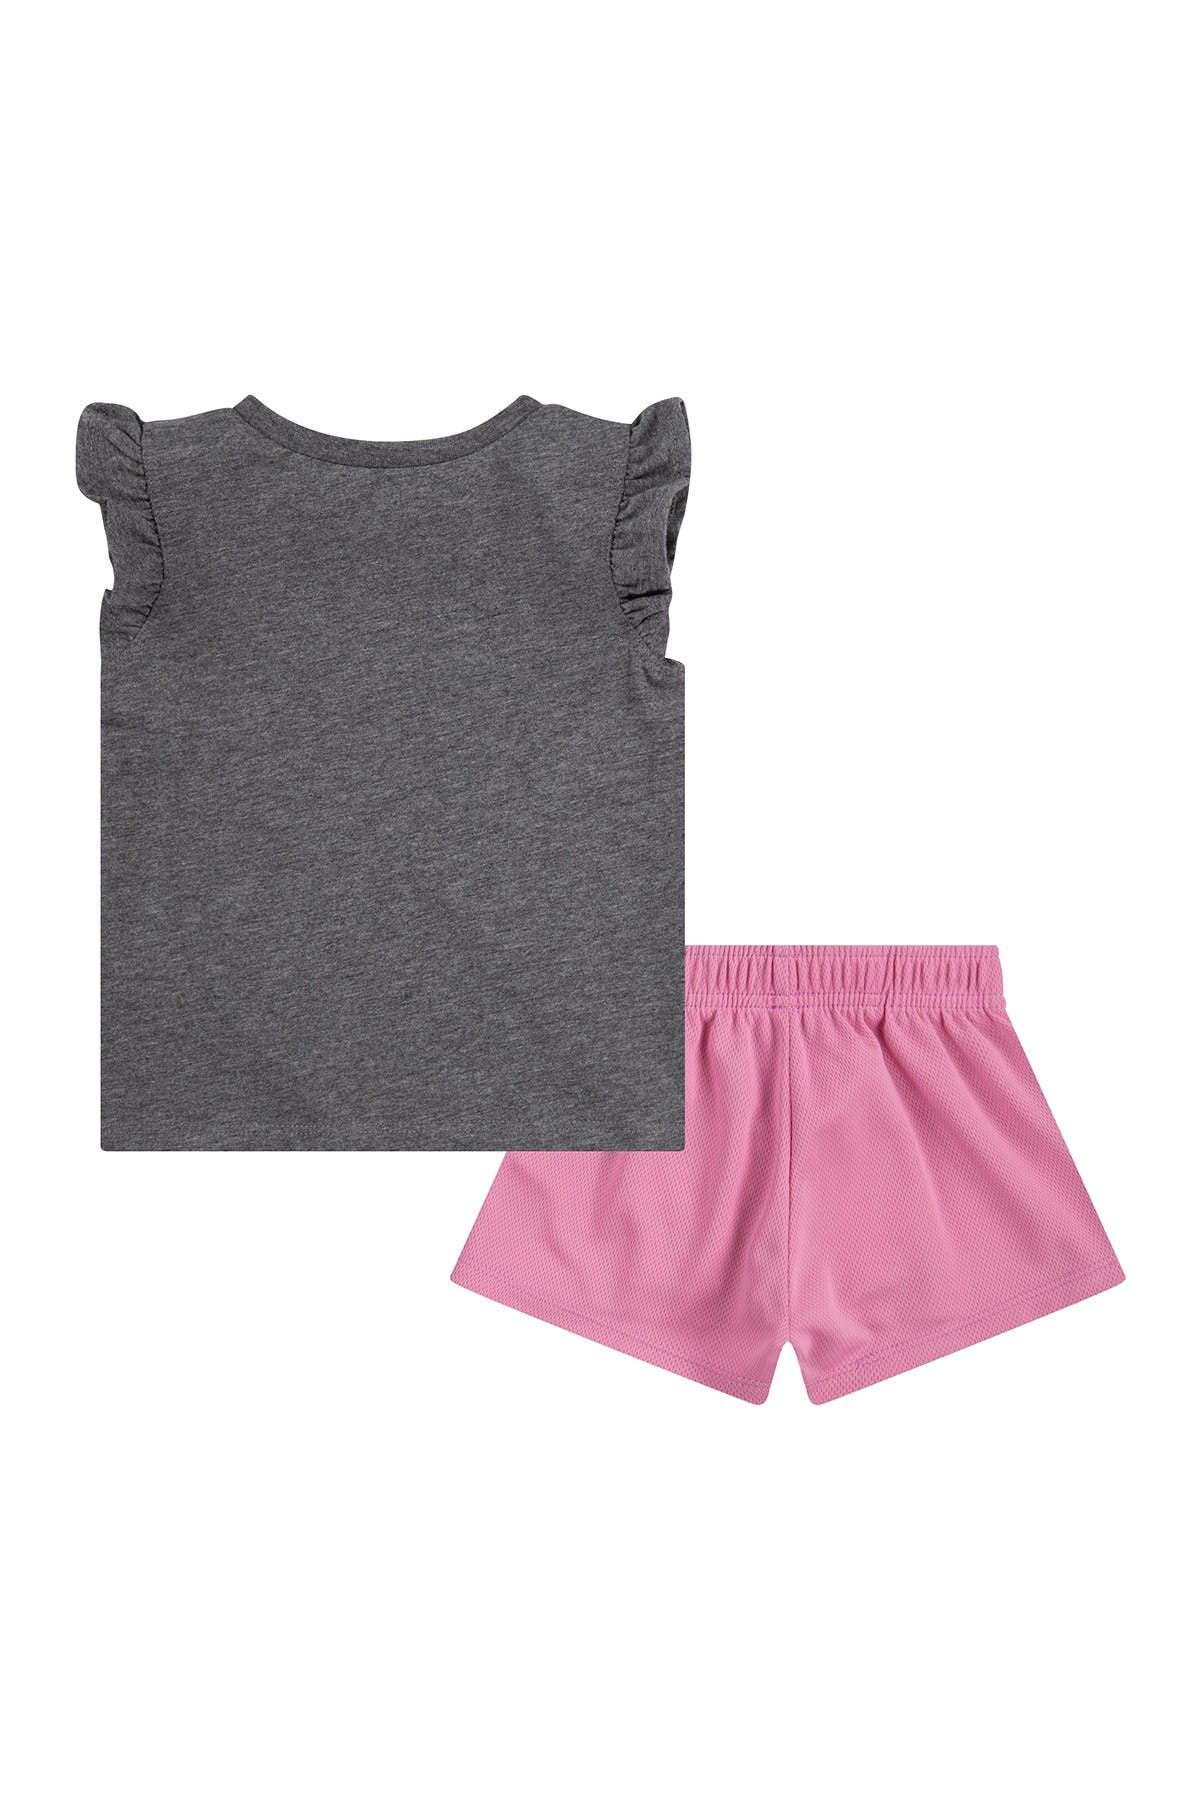 Image of Nike Girls Crush It Graphic Tee & Shorts Set